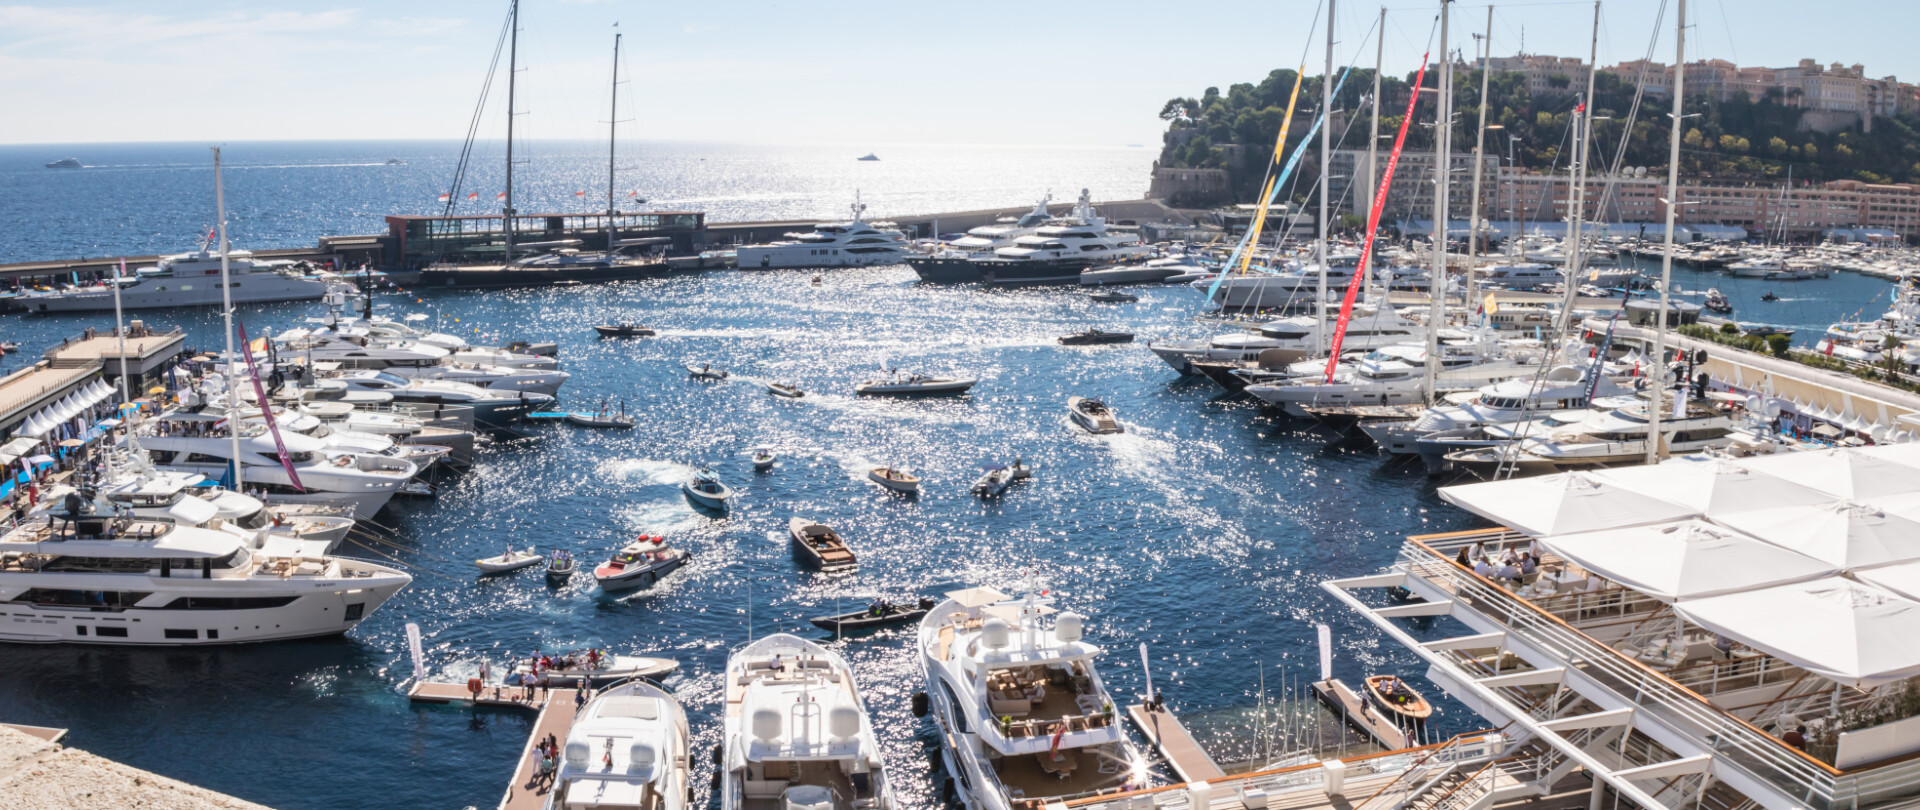 Explore the 2017 Monaco Yacht Show in style photo 1